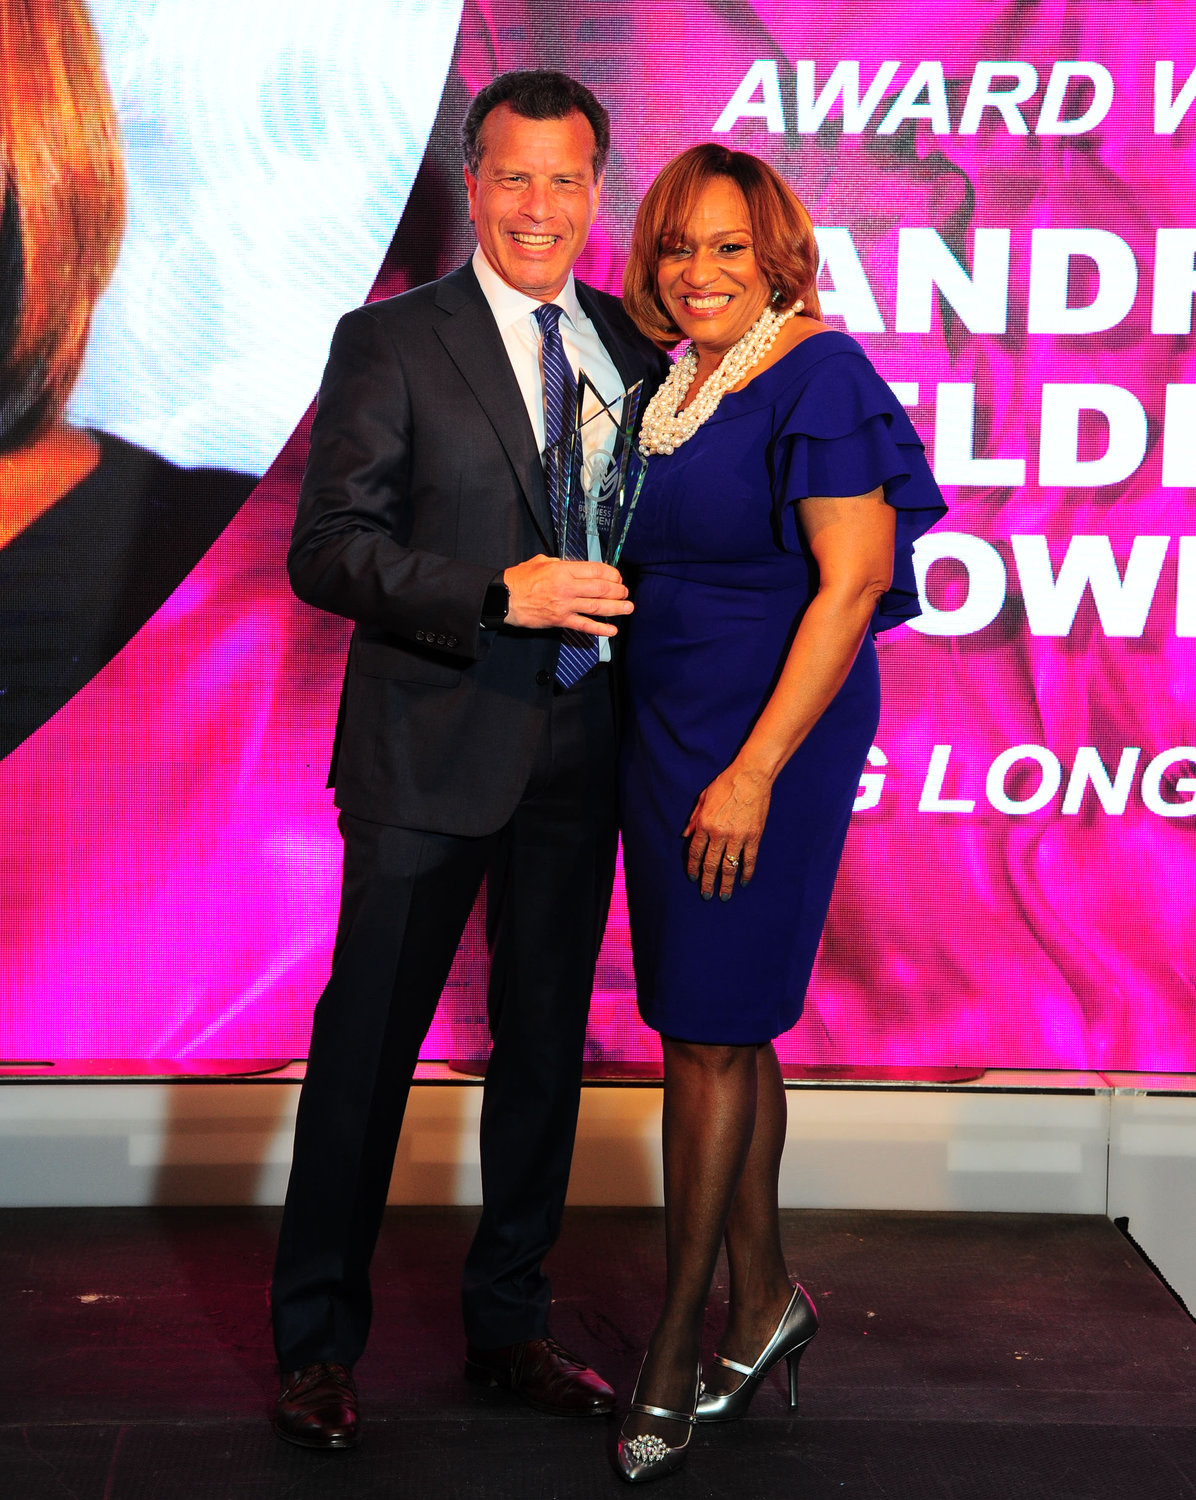 Stuart Richner presented an award to Andrea Elder-Howell, vice president of legal at PSEG Long Island.